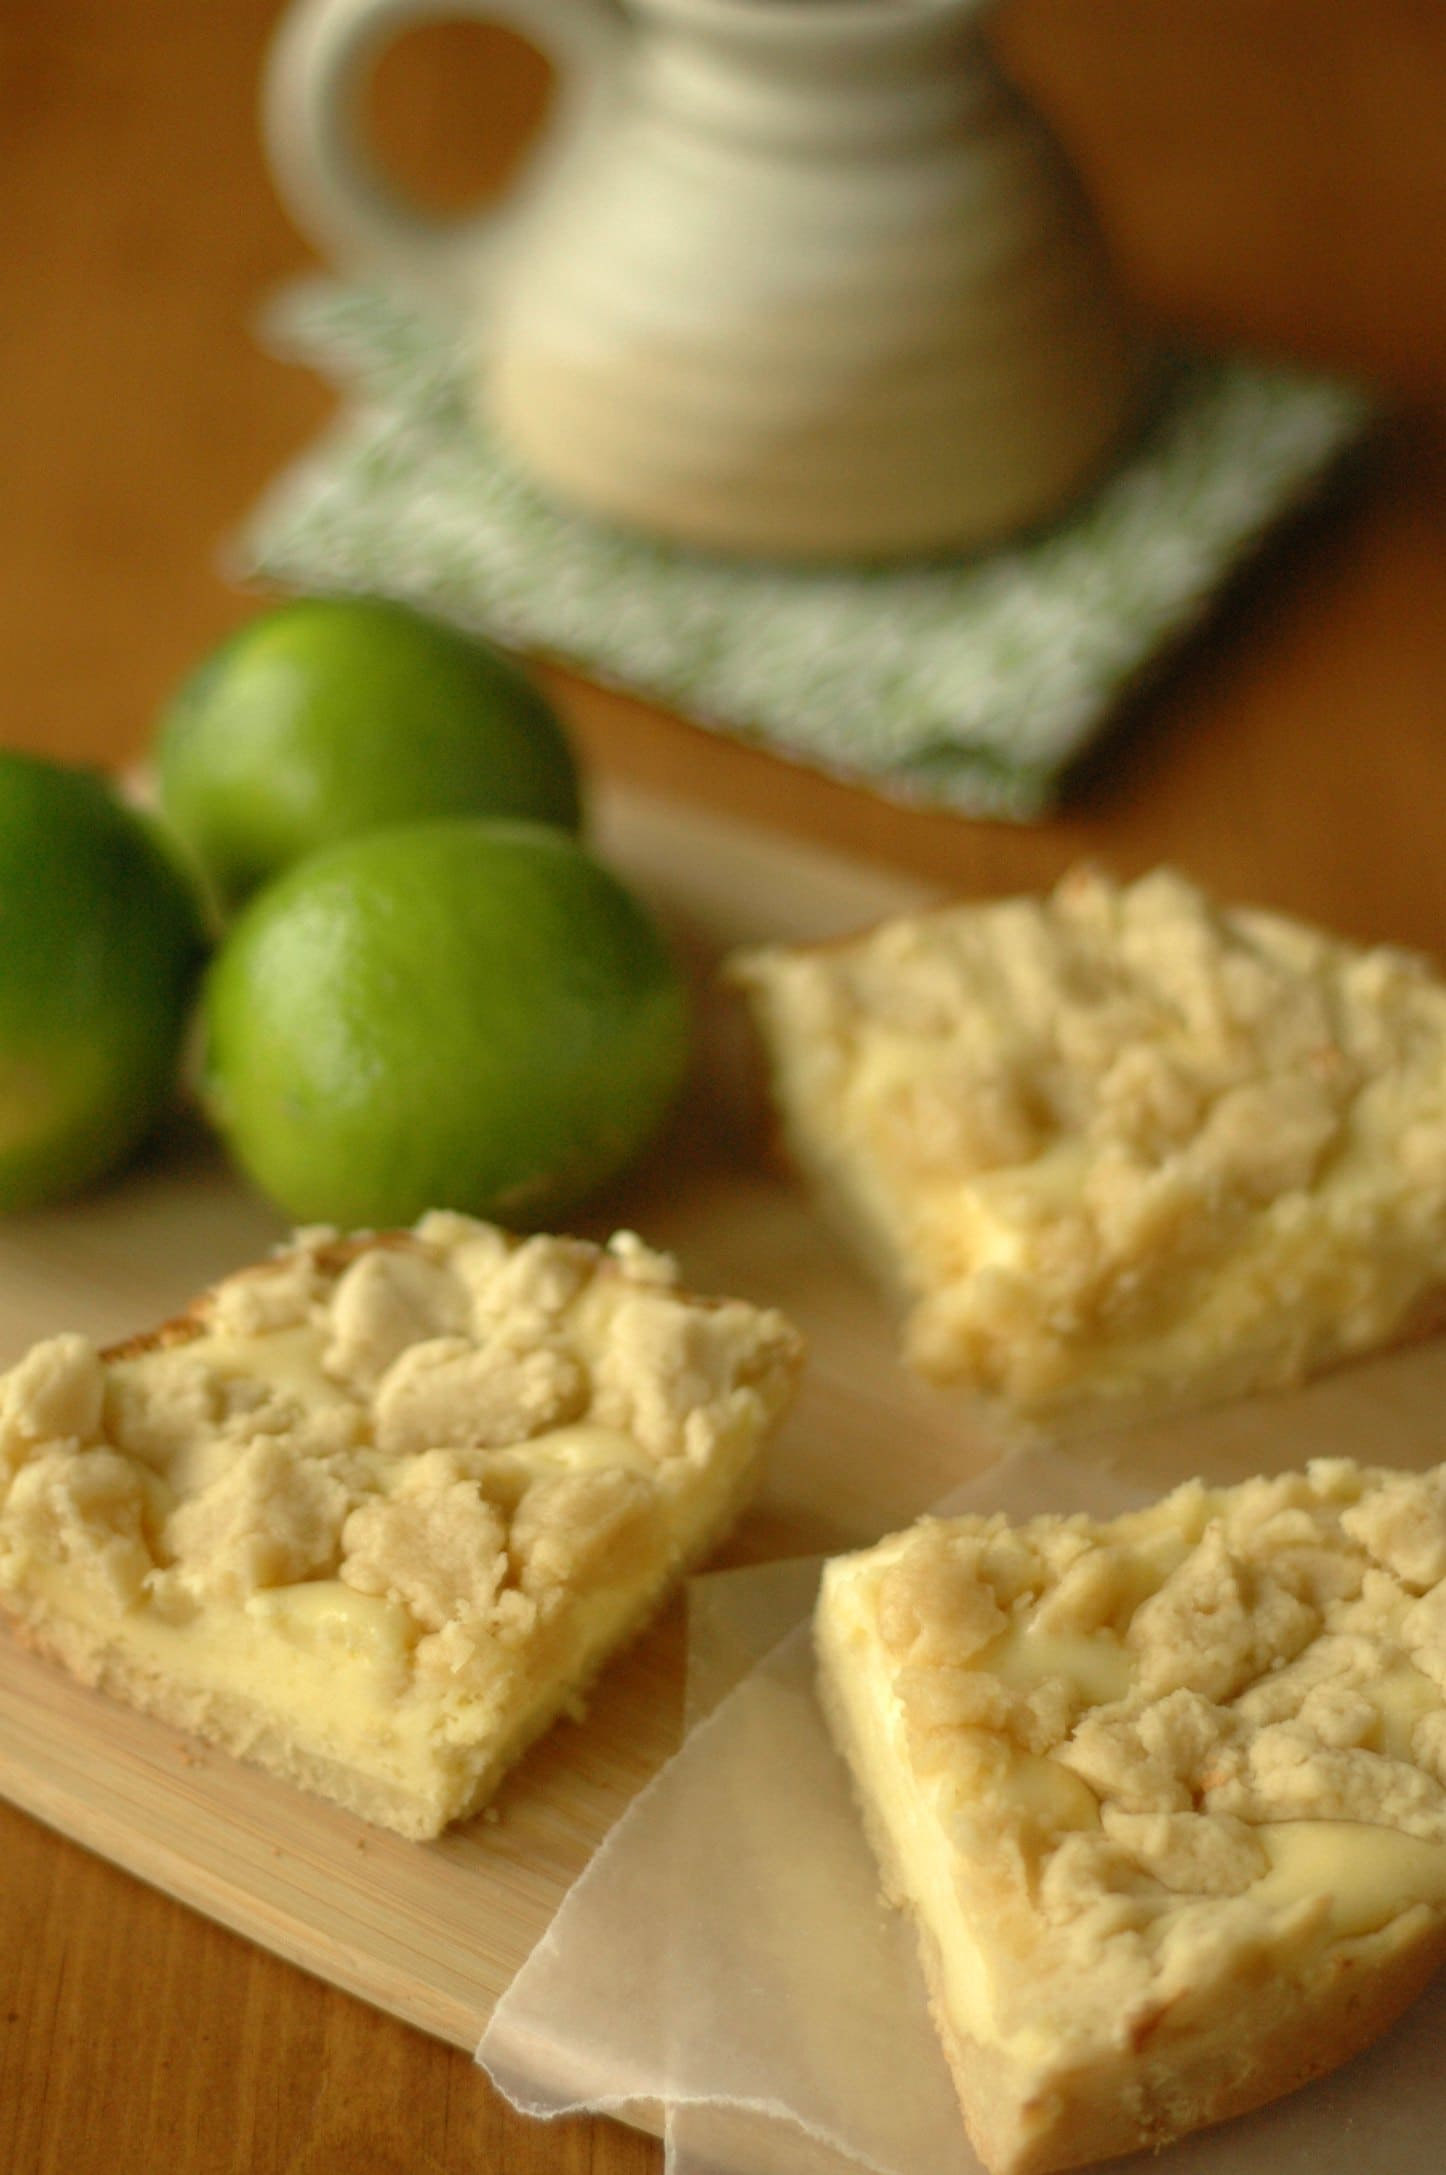 Three cheesecake cookie bars on cutting board with limes